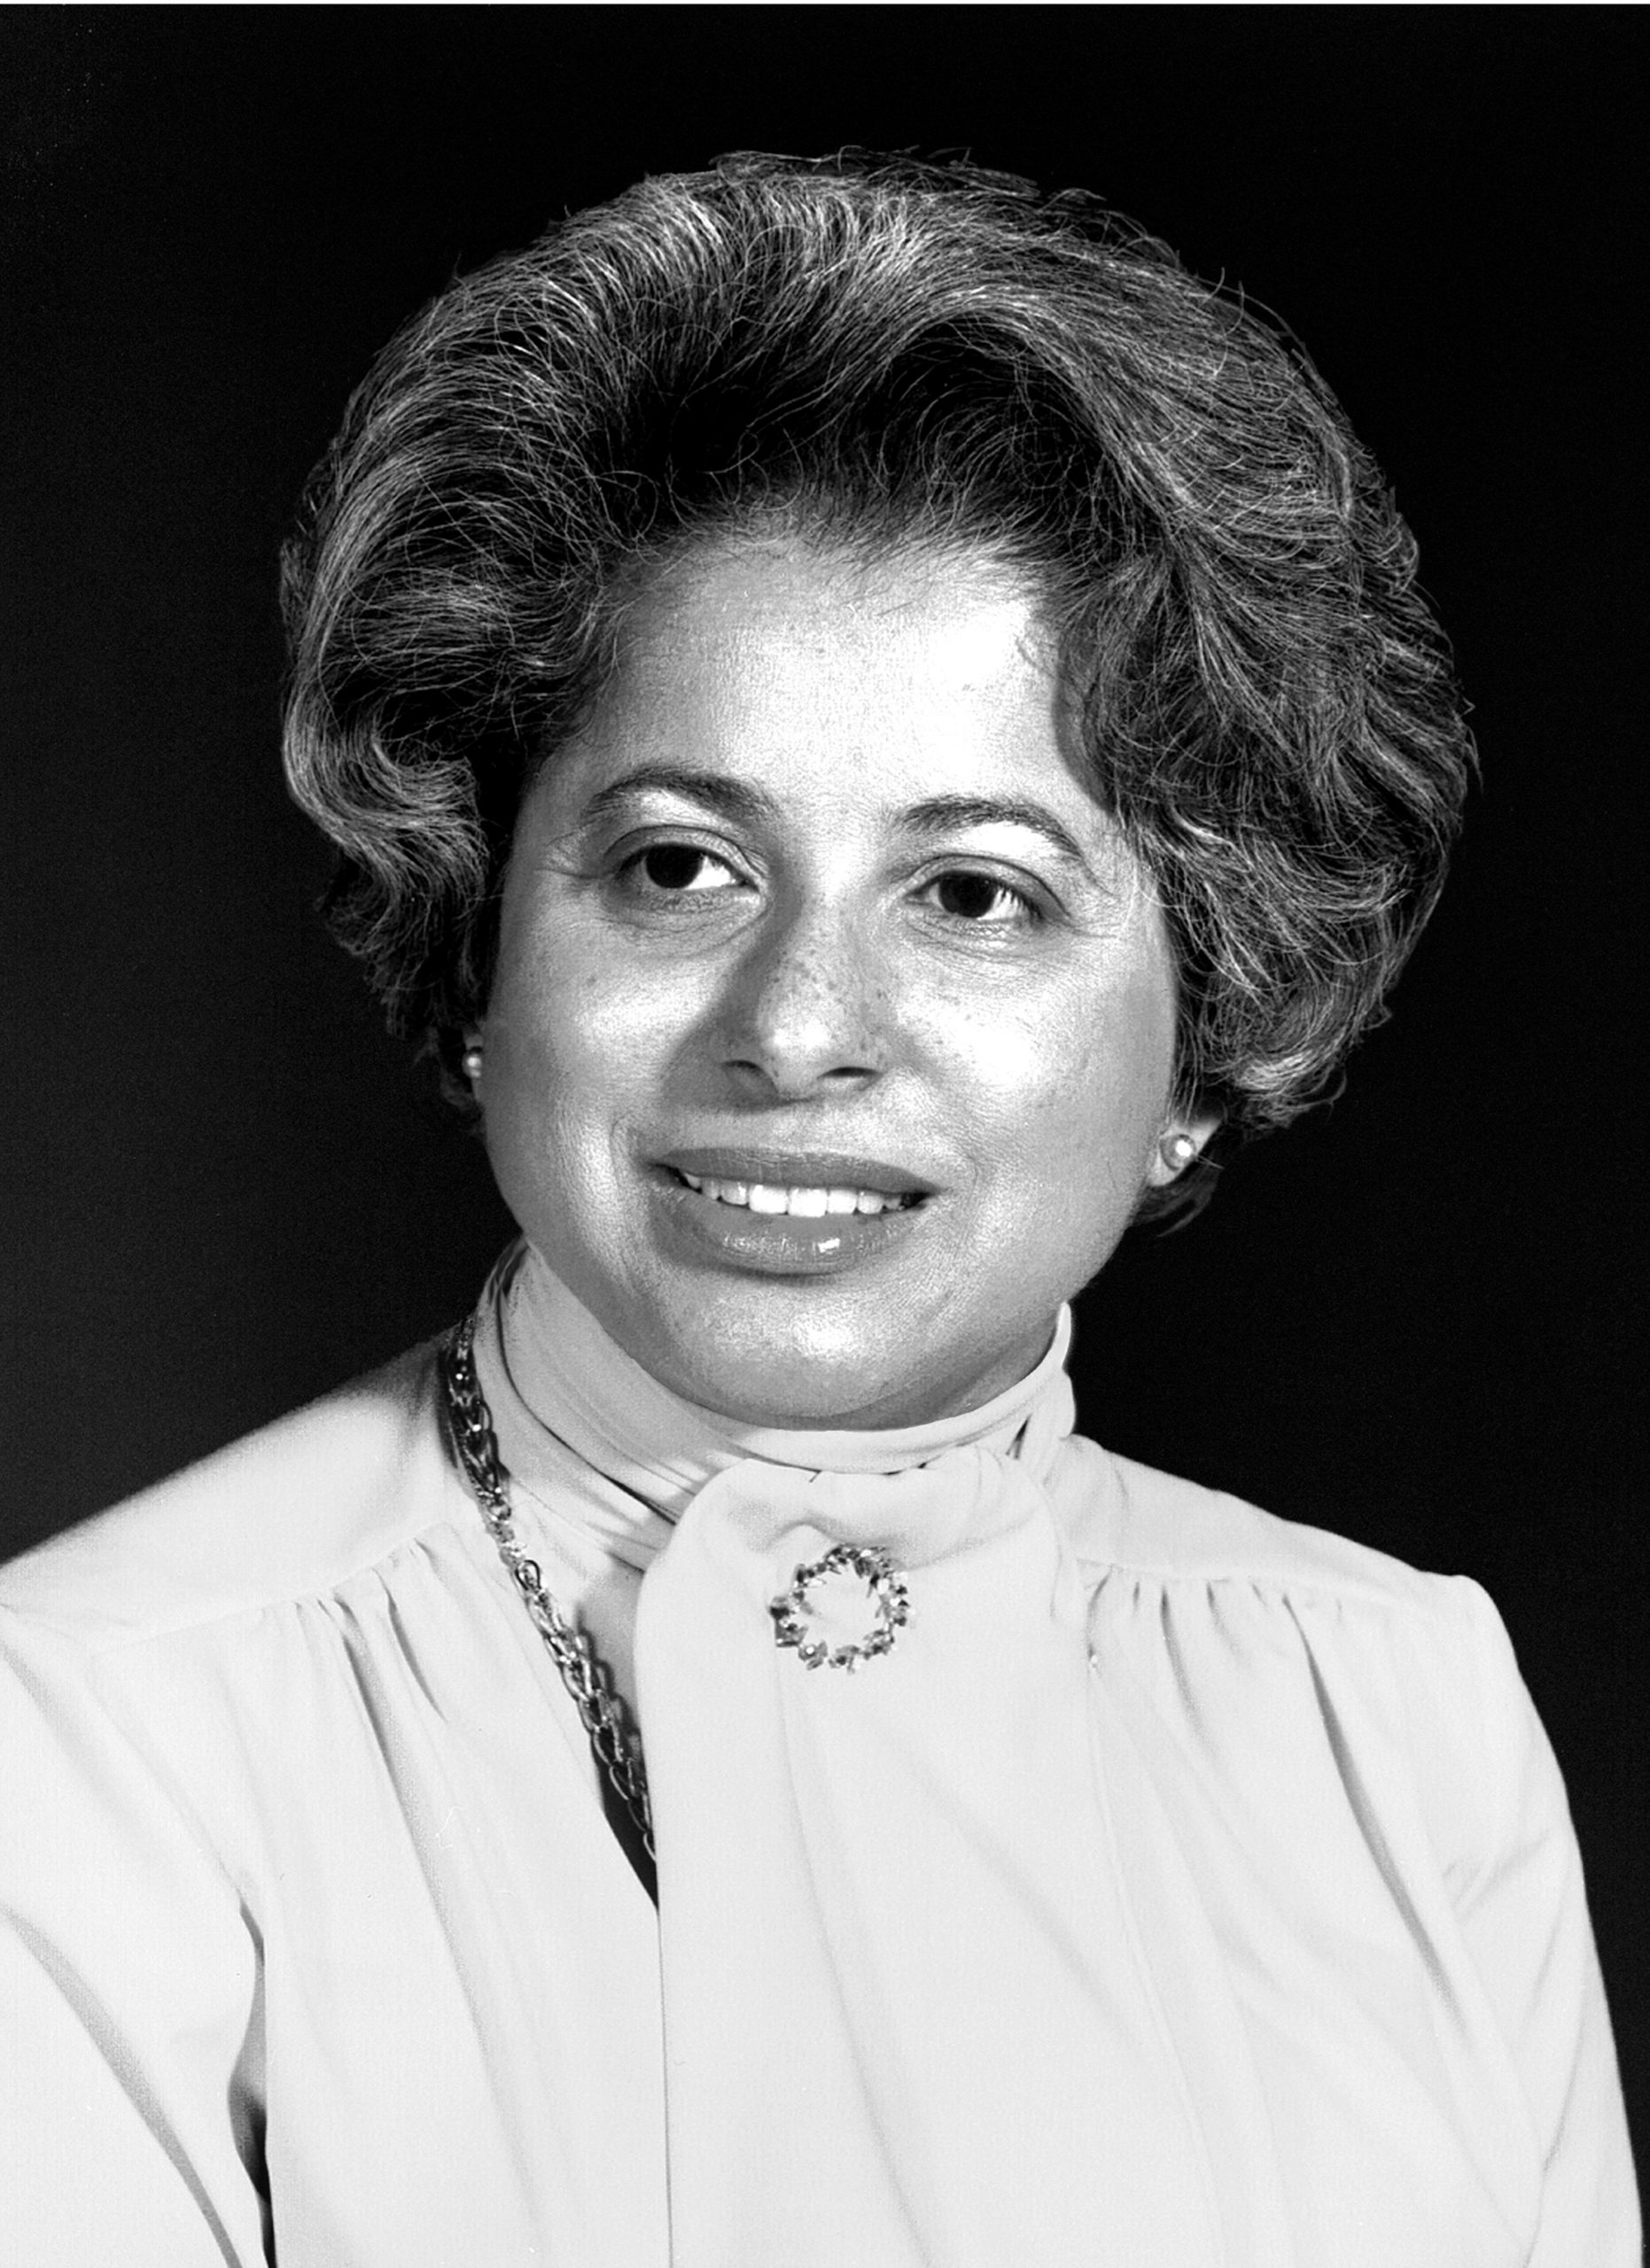 Patricia Roberts was the first Black woman to serve in the United States Cabinet.